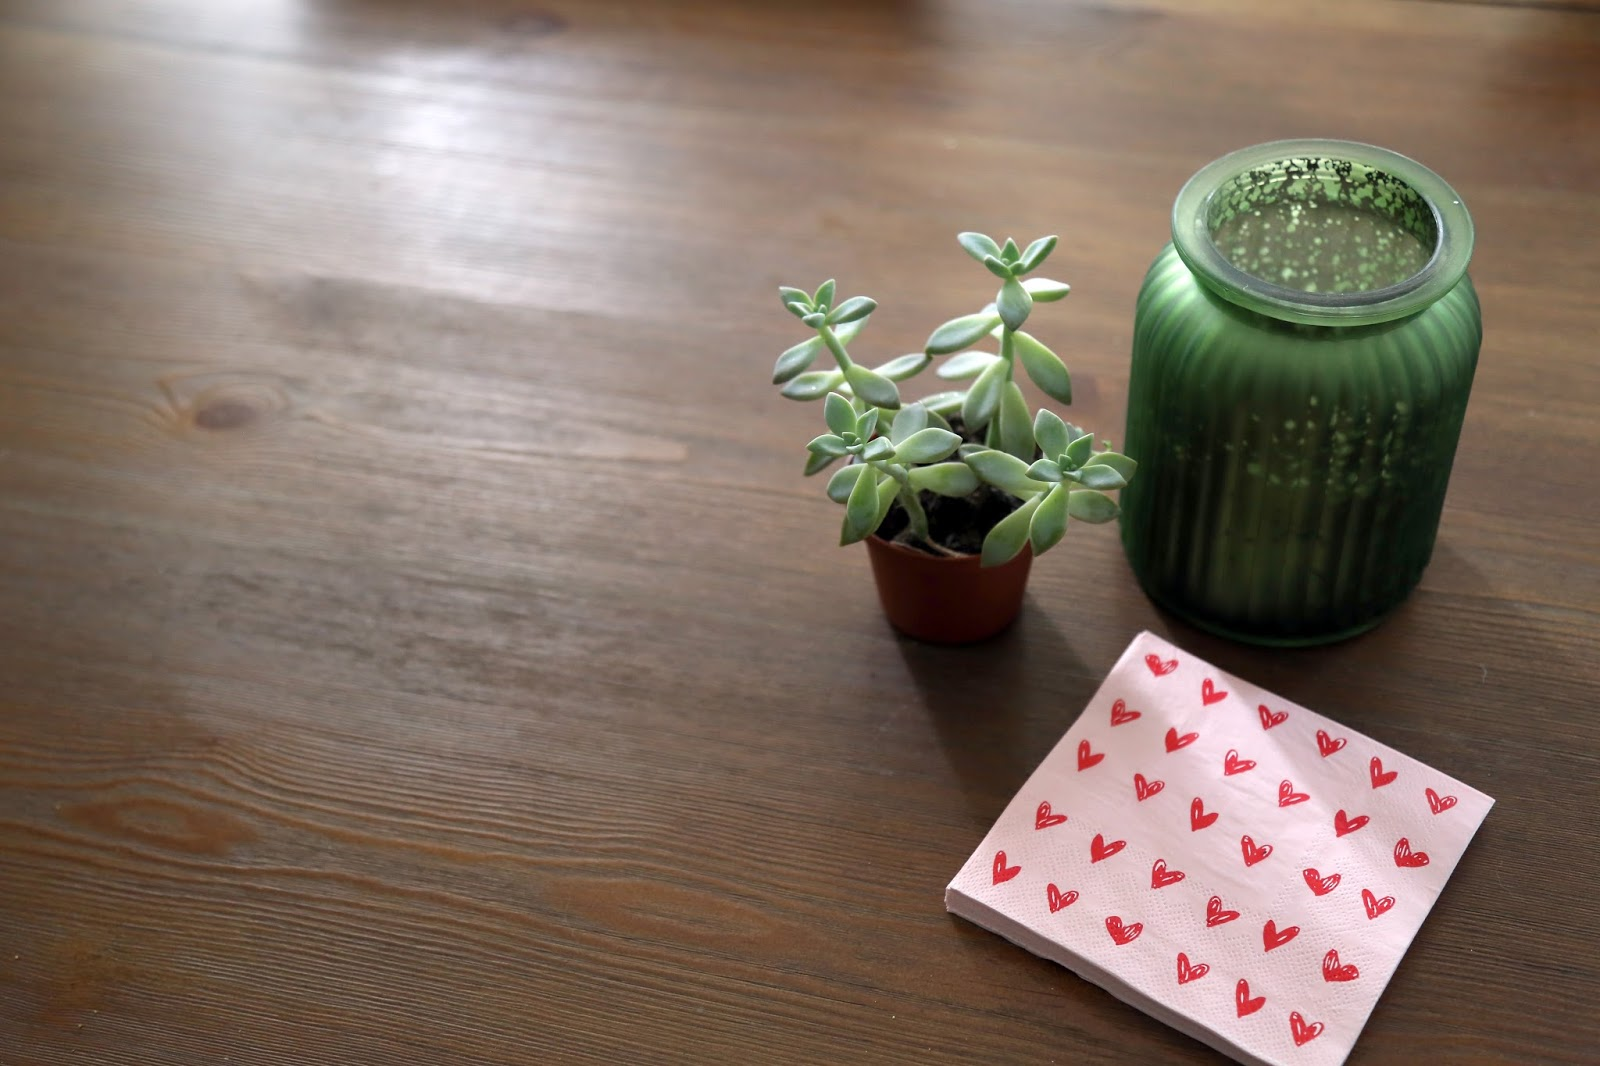 katiefarrin, home, decor, succulents, Pinterest, decorating, stock imagery, styled photography, kitchen table, home